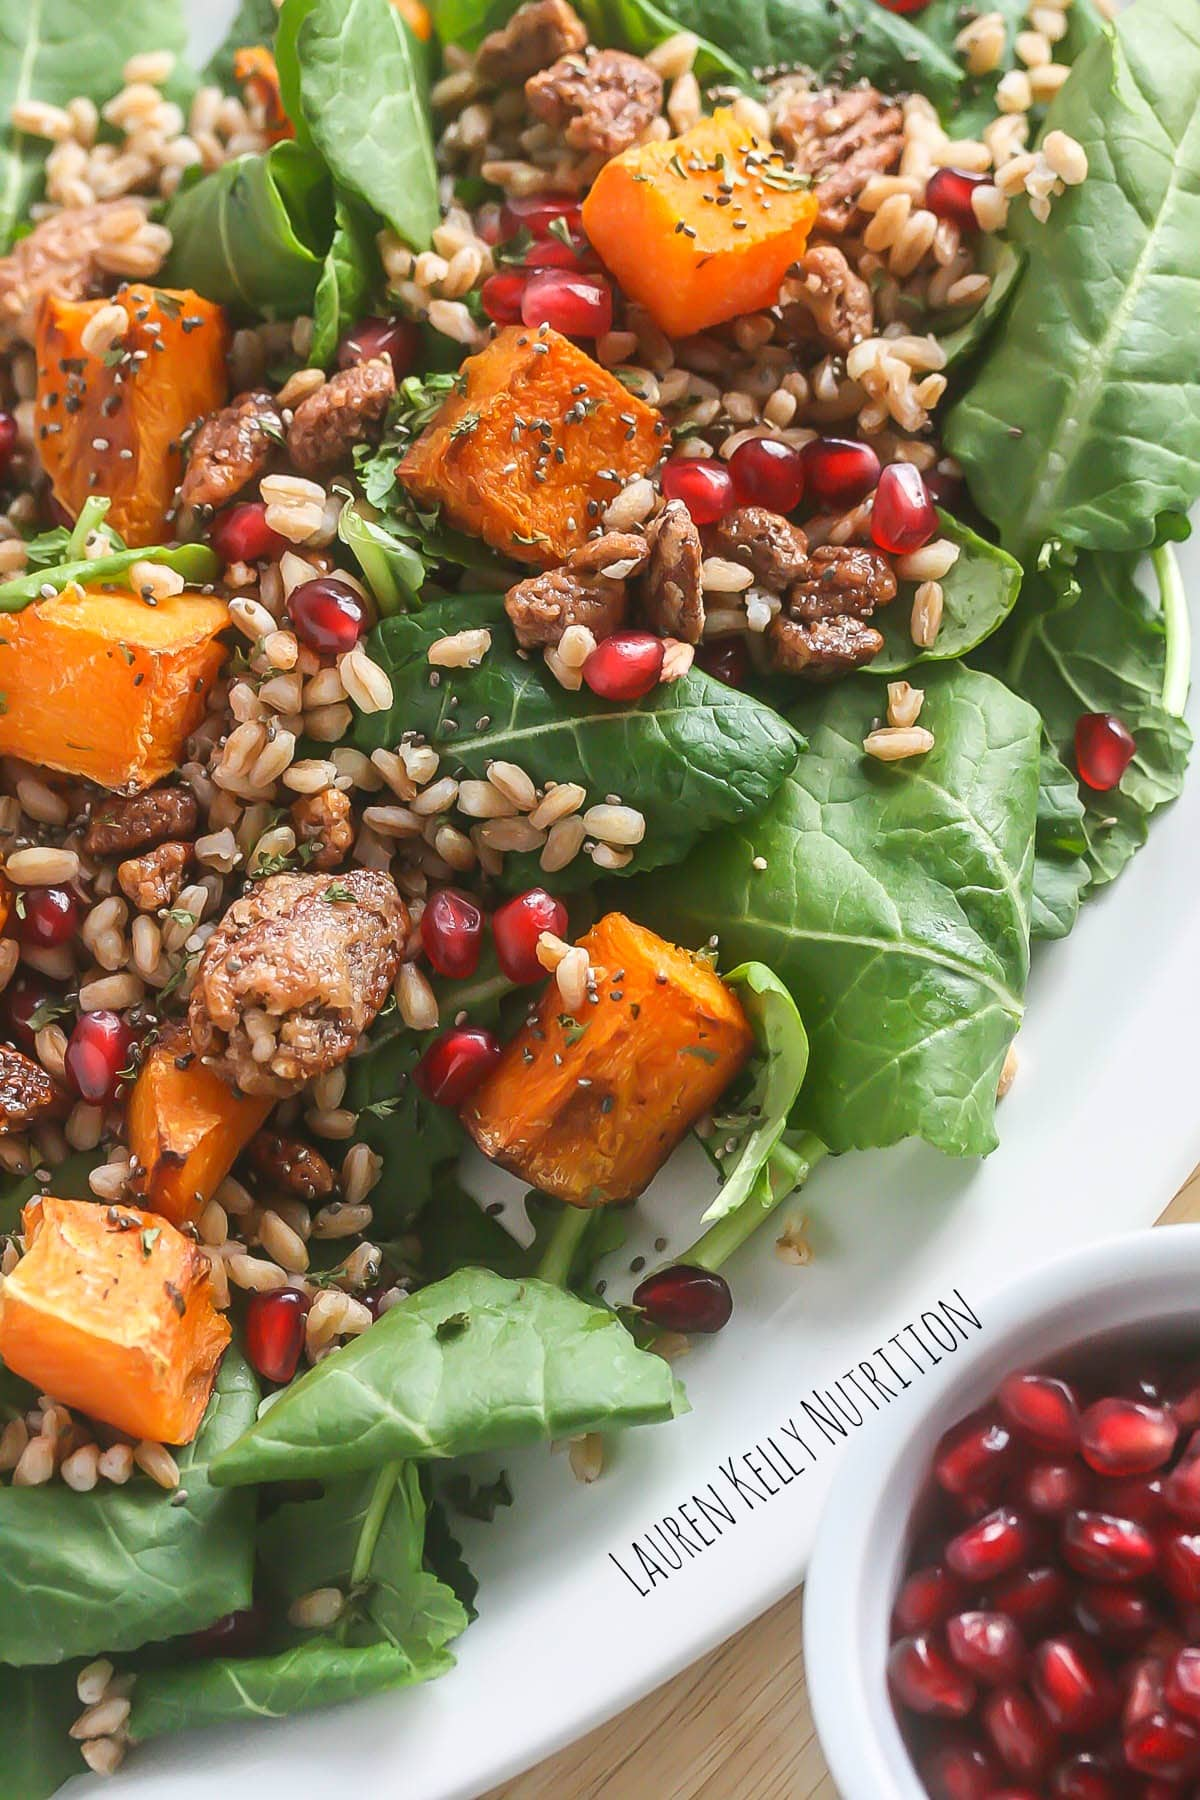 Winter Kale Salad with Butternut Squash and Farro from Lauren Kelly Nutriiton